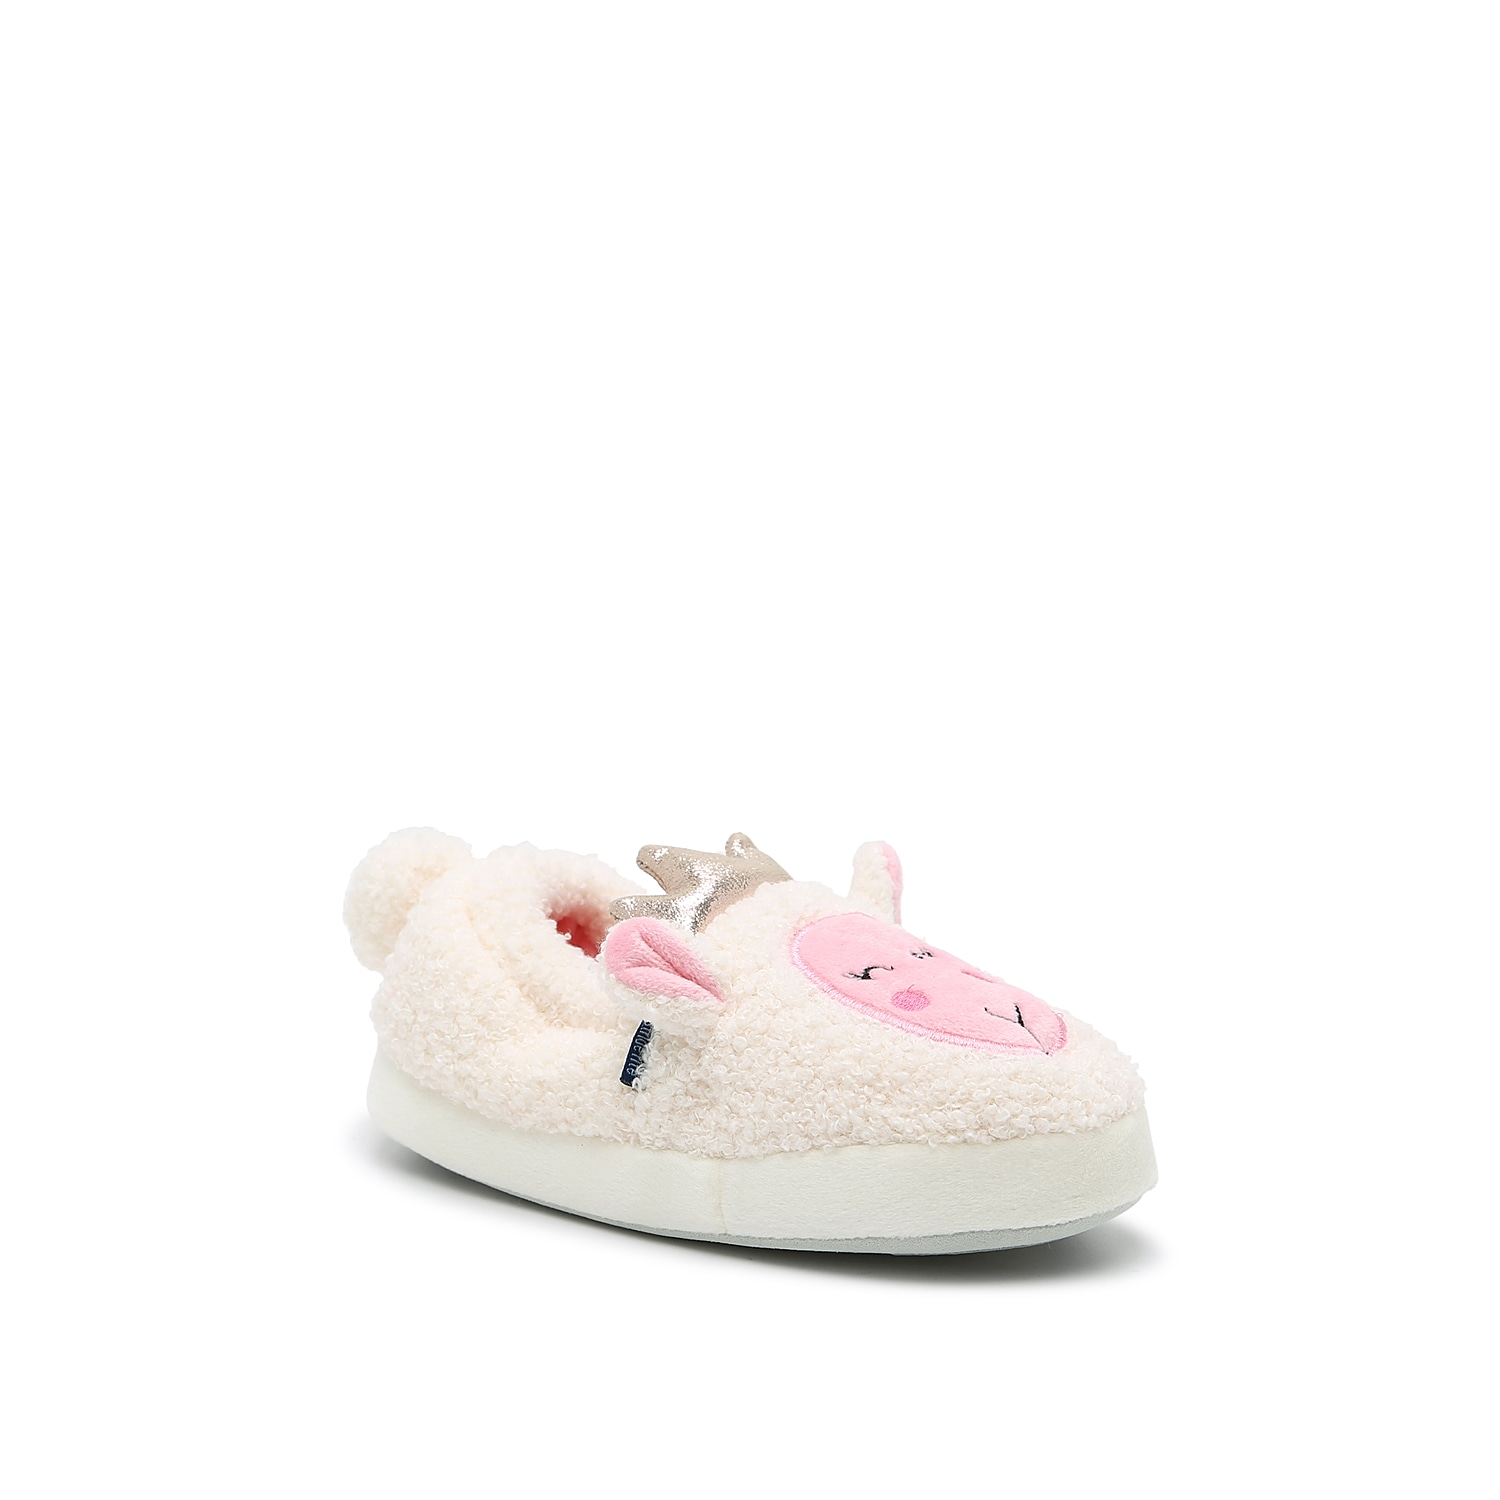 The Lauren Lamb slipper from Stride Rite will have your little one feeling like a princess. With pop-out ears and a crown accent, this fuzzy pair will keep them comfortable day or night.Not sure which size to order? Clickhereto check out our Kids' Measuring Guide! For more helpful tips and sizing FAQs, clickhere.